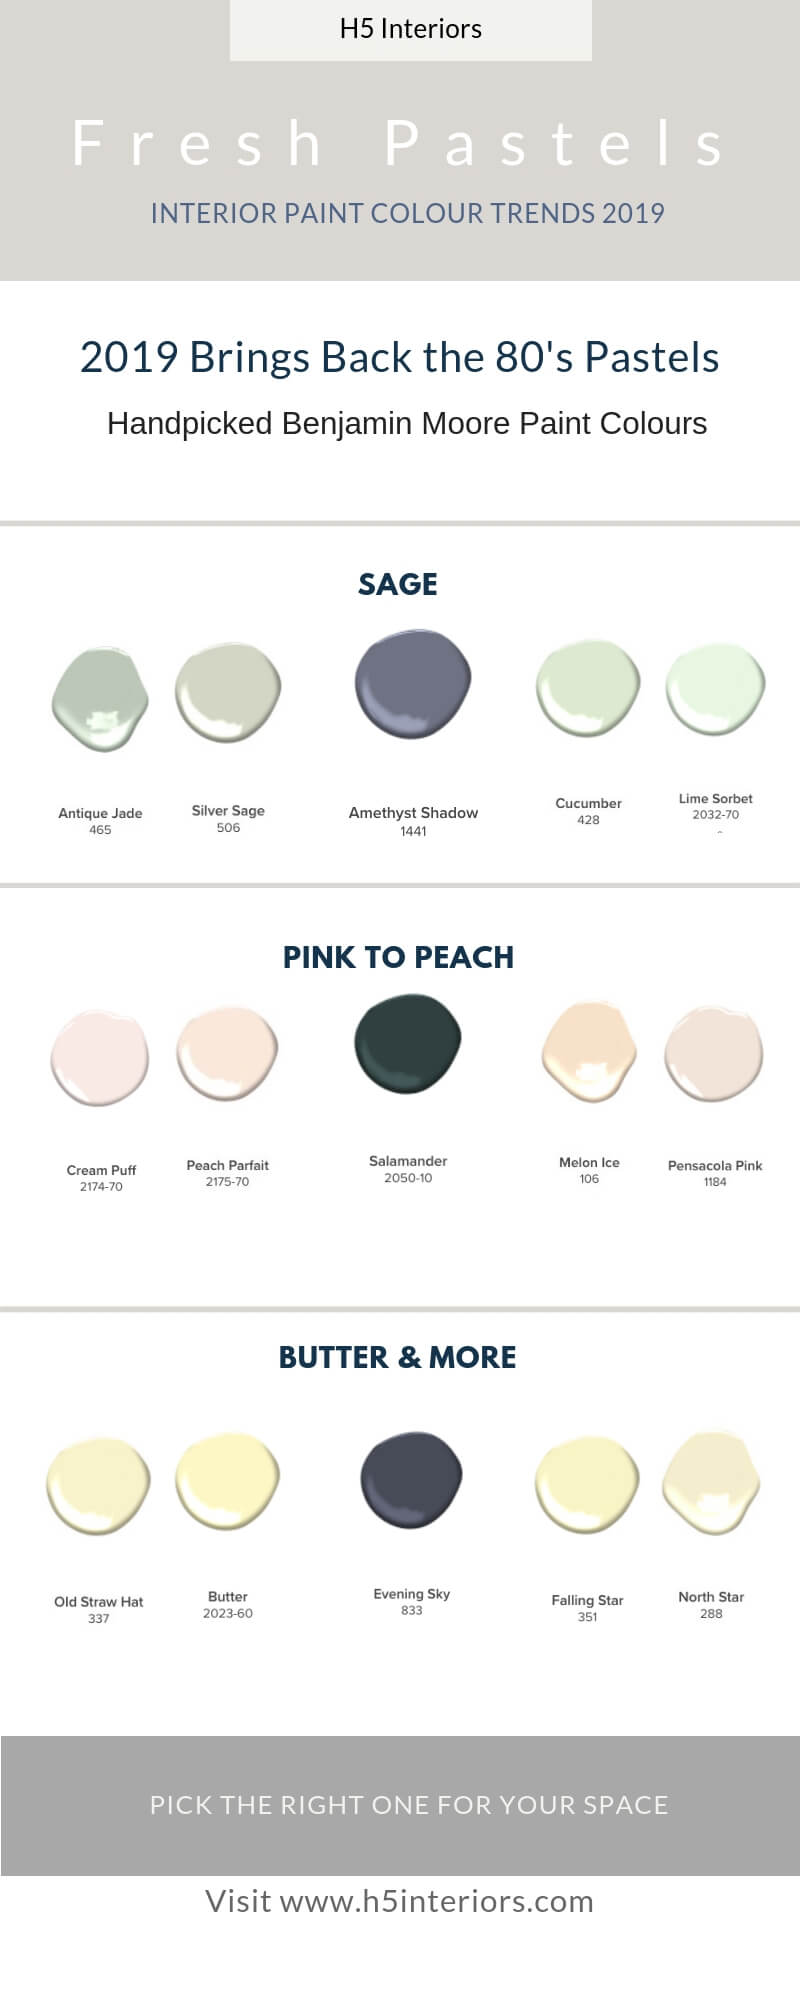 2019 Paint Colour Trends - 3 Ready to Use Palettes - H5